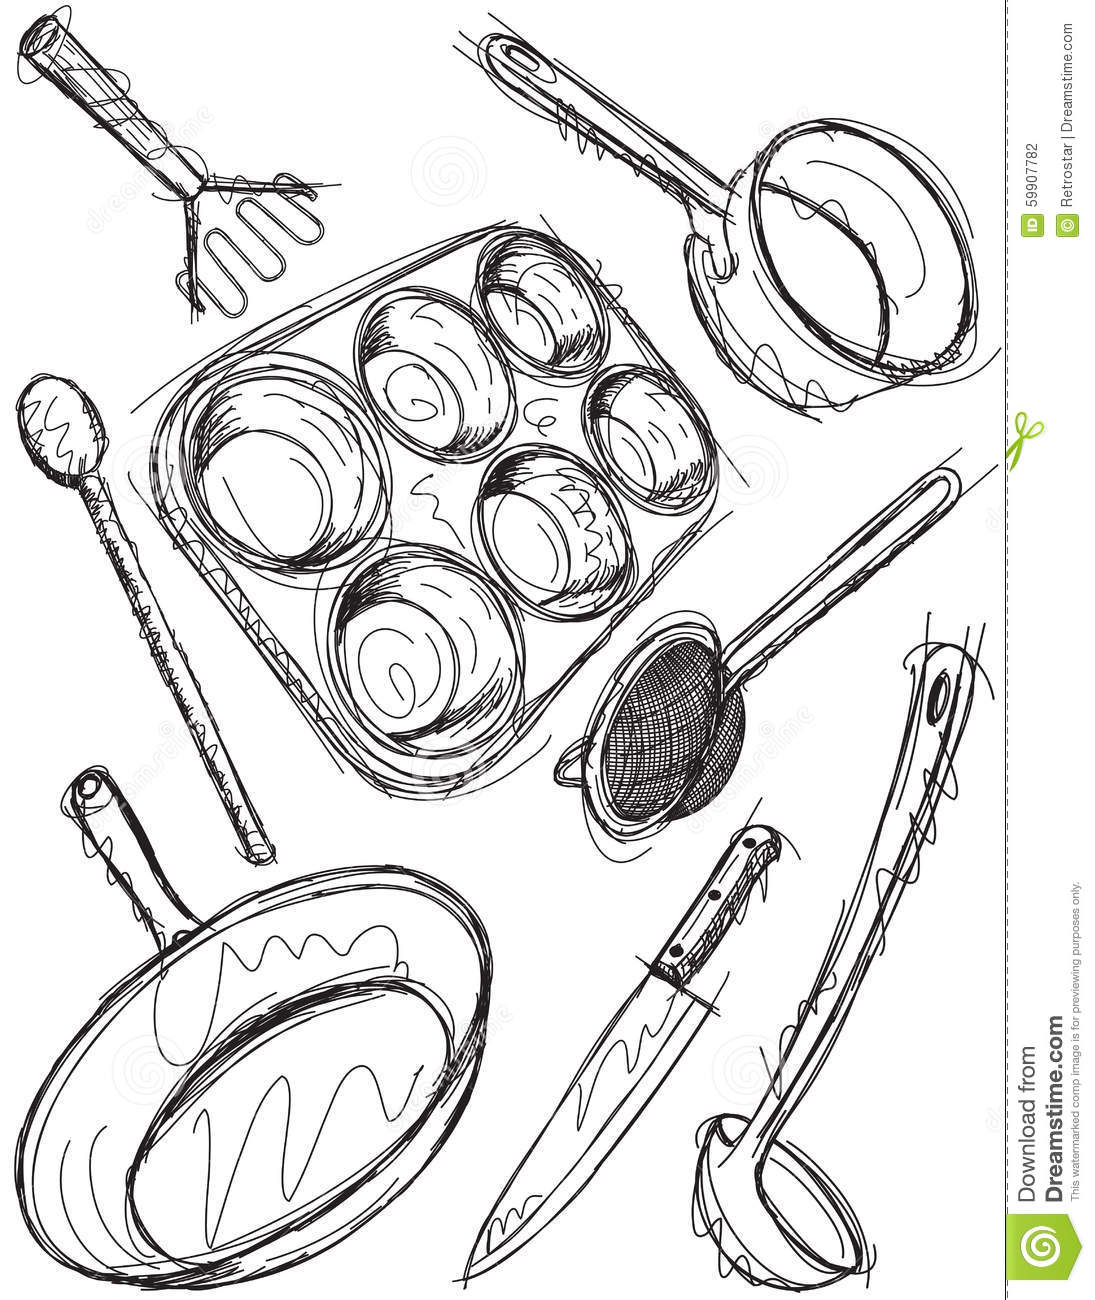 The Kitchen Sink Art Drawing Sketch Sketchbook By: Cooking Utensil Sketches Stock Vector. Illustration Of